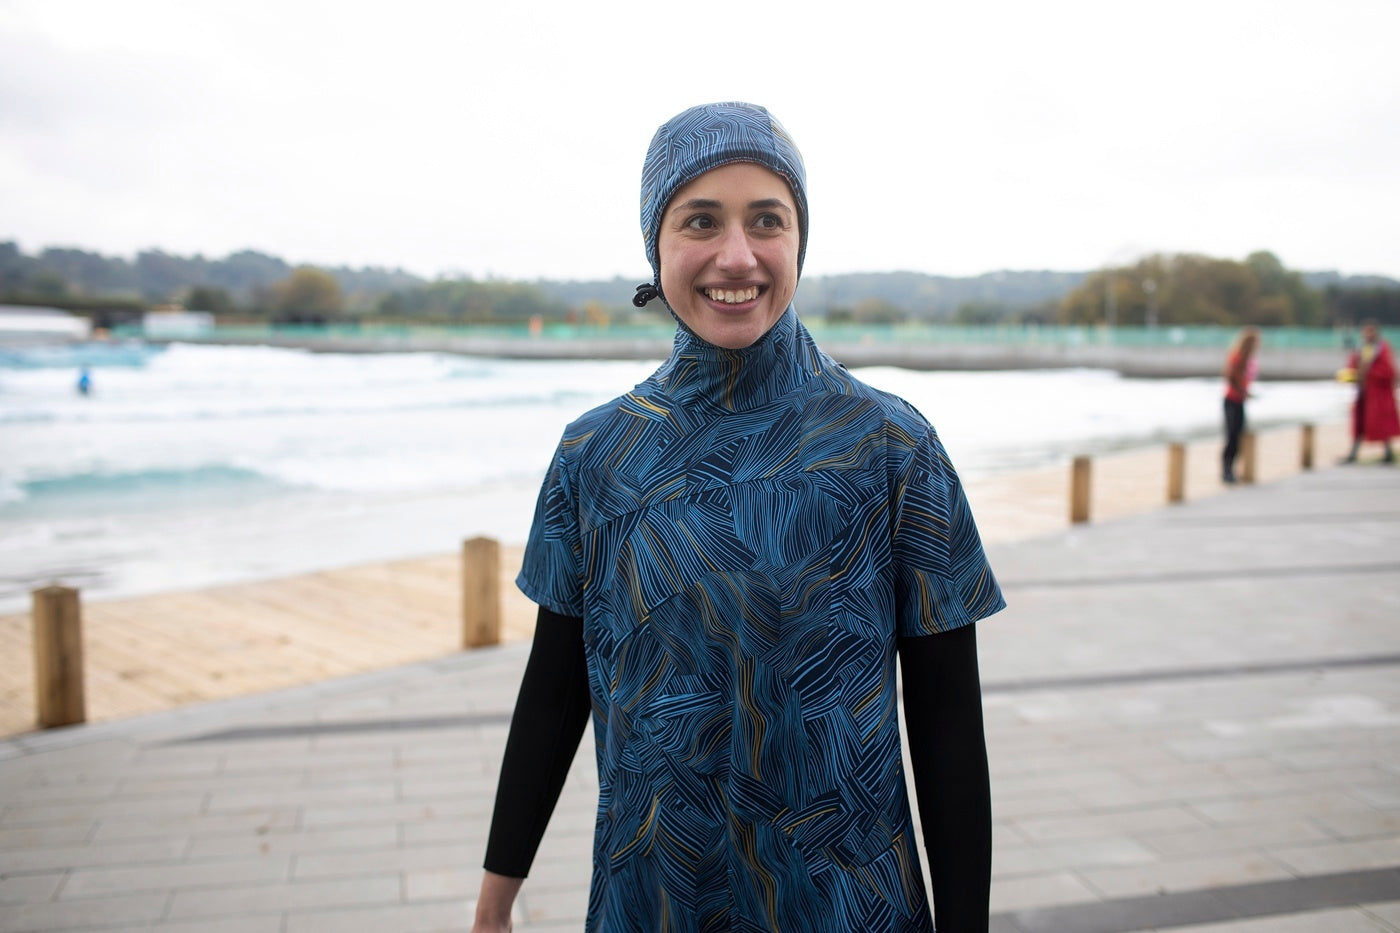 Shirin Gerami testing the Finisterre Seasuit at the Wave in Bristol